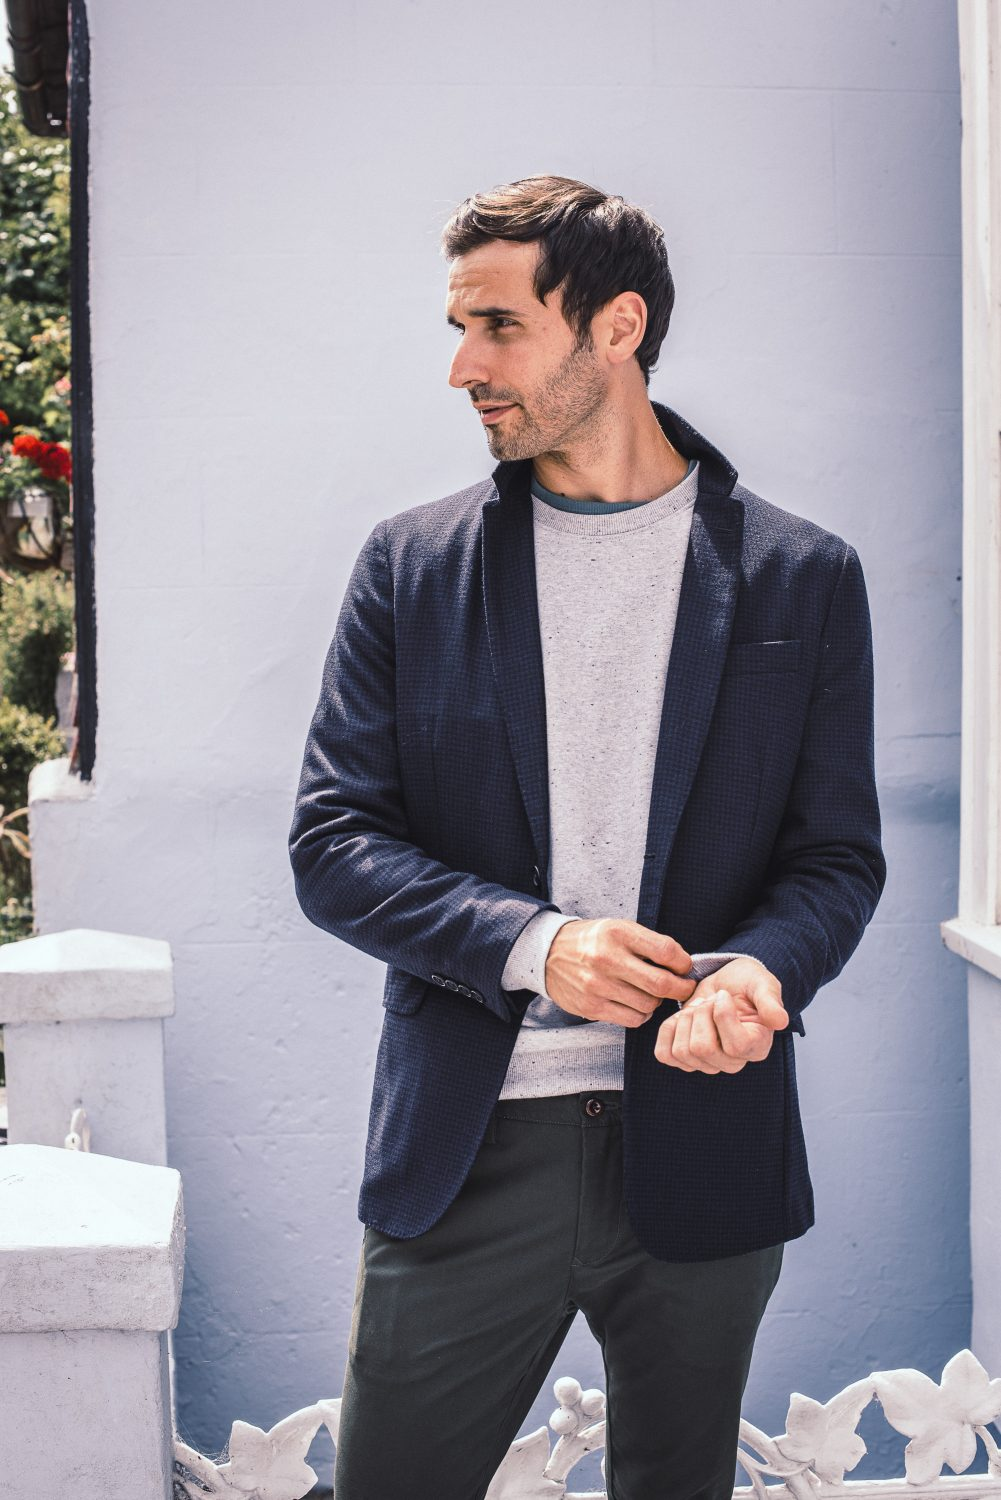 Build up layers with a sweatshirt over a classic T, under a  jacket